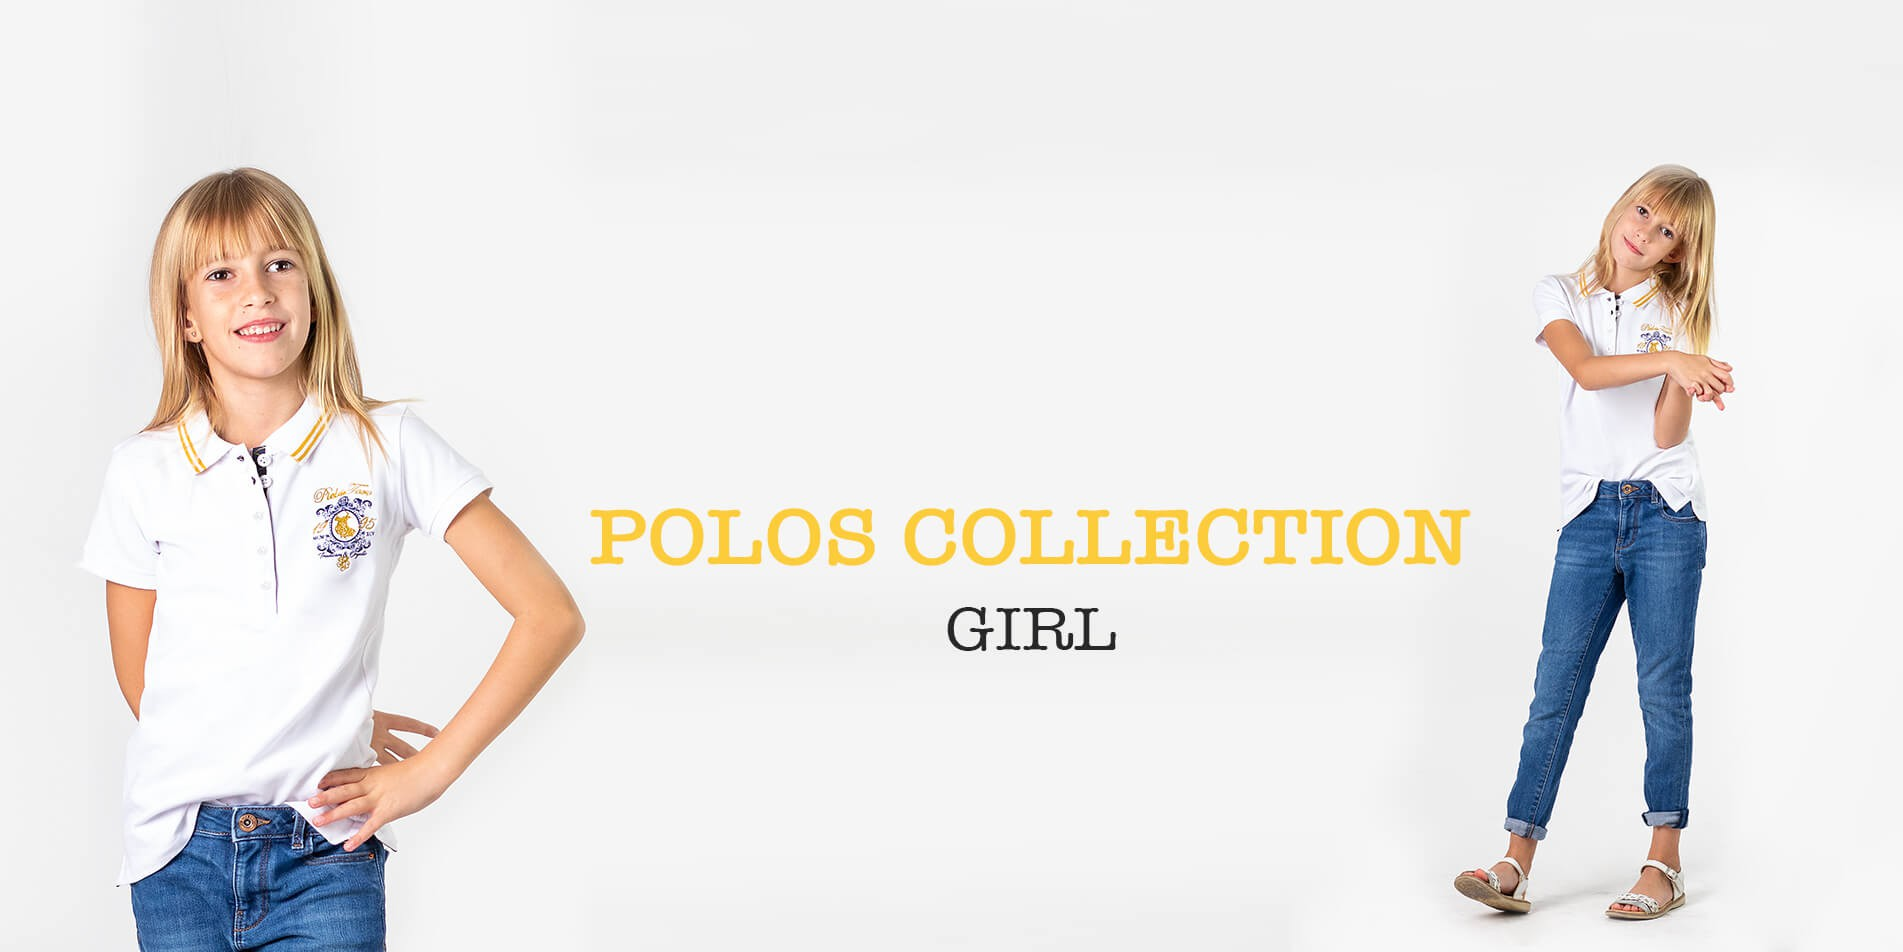 Girl collection image section